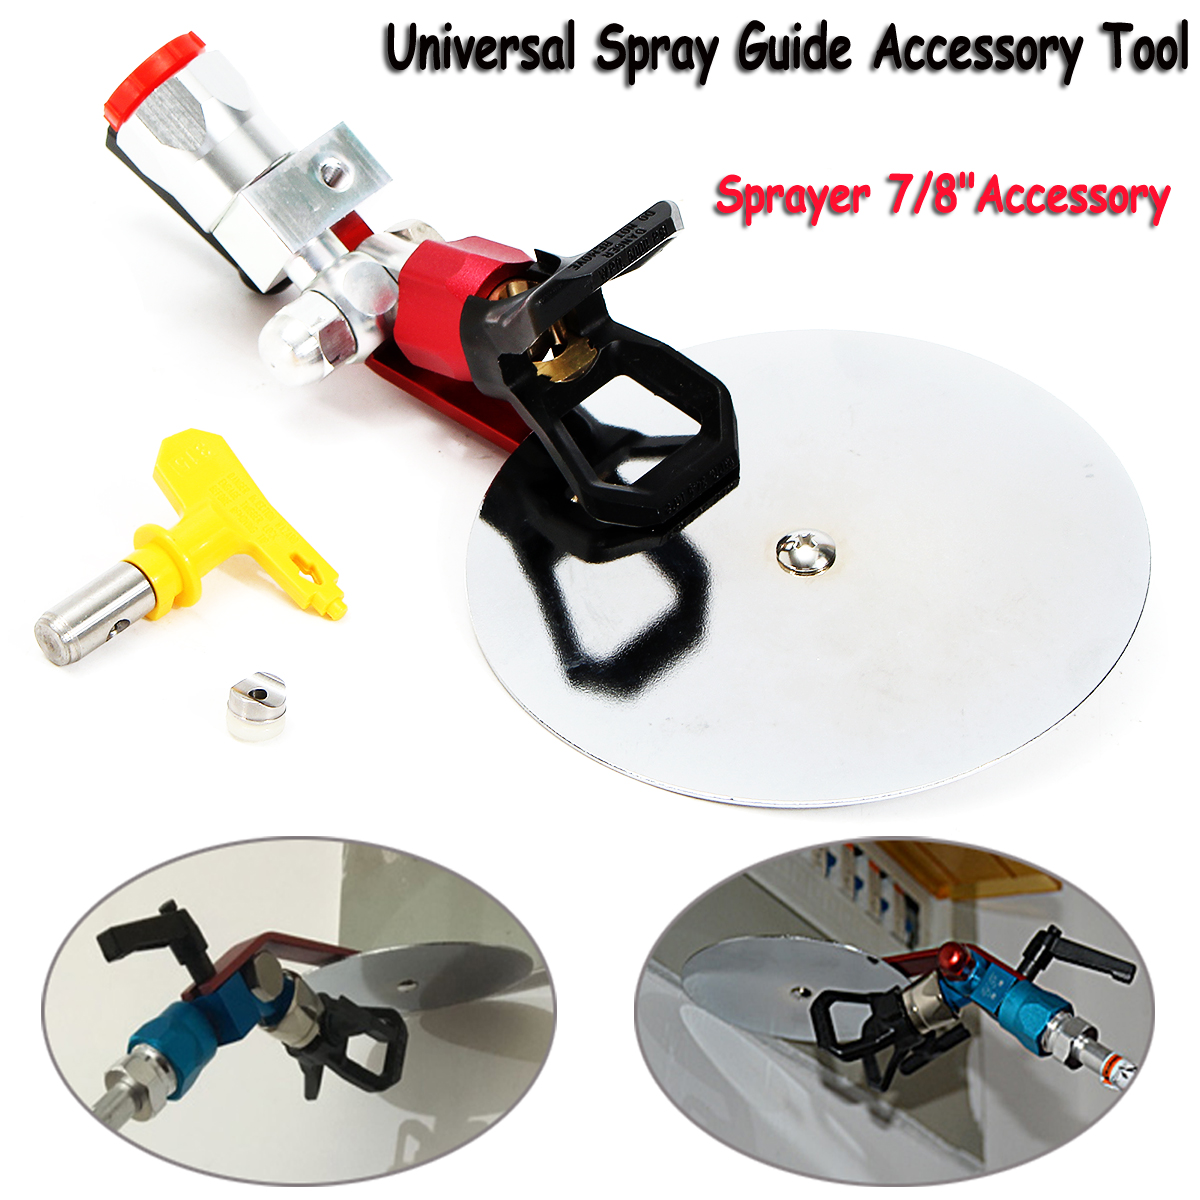 25cm x 6cm Universal Spray Guide Tool for 7/8 Inch Nozzle Paint Sprayer Pneumatic Power Tool Parts Airless Spray Tip Hardware hyvst spray paint parts manifold for spt900 270 dt9027015